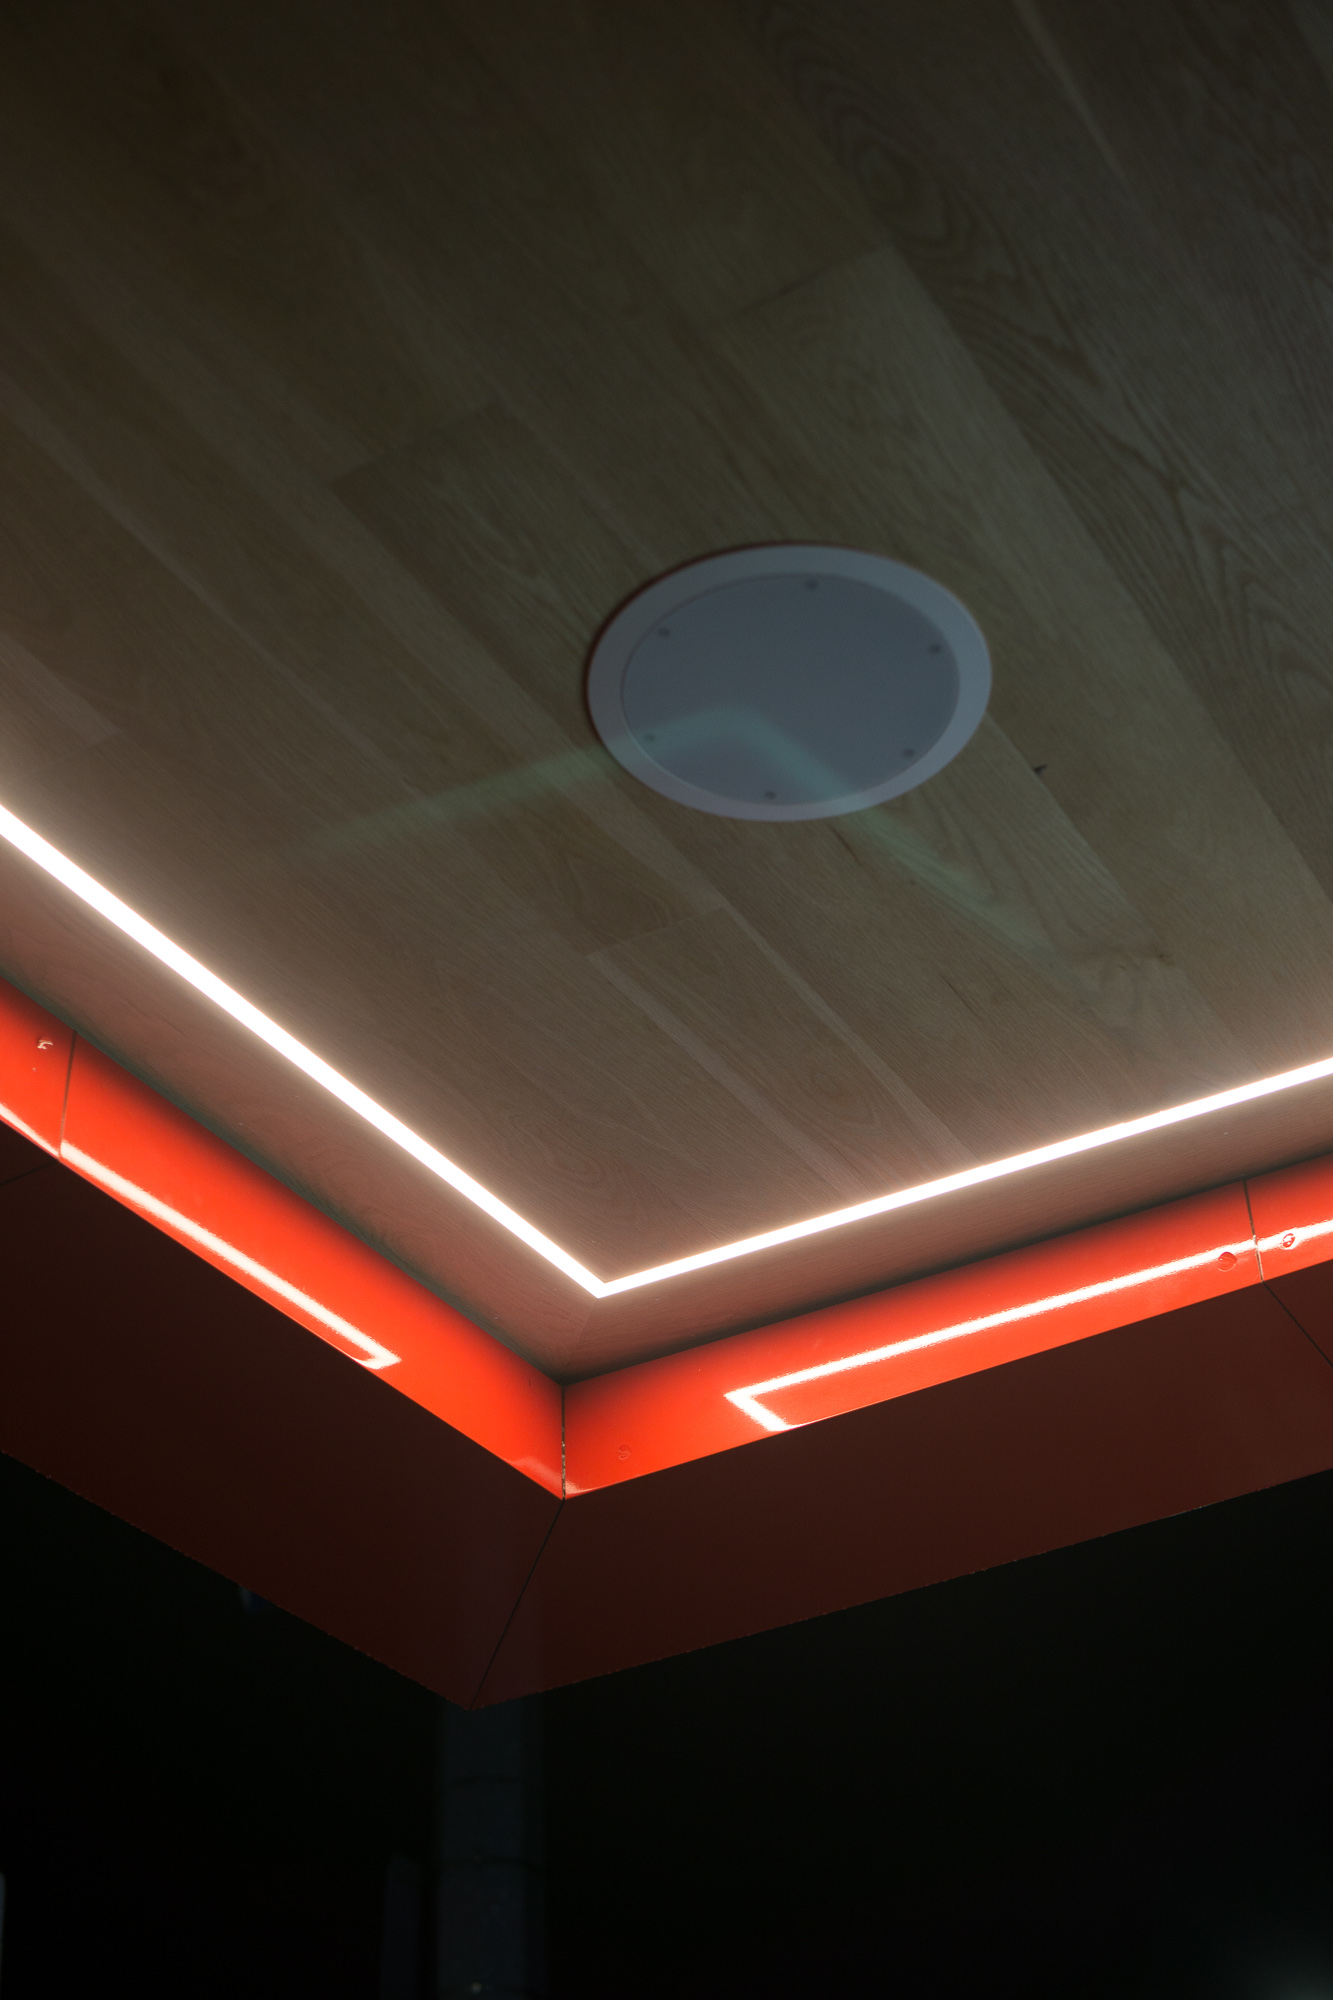 This is a picture of the ceiling of a fast food restaurant which I took while why are you still reading this. Unedited.